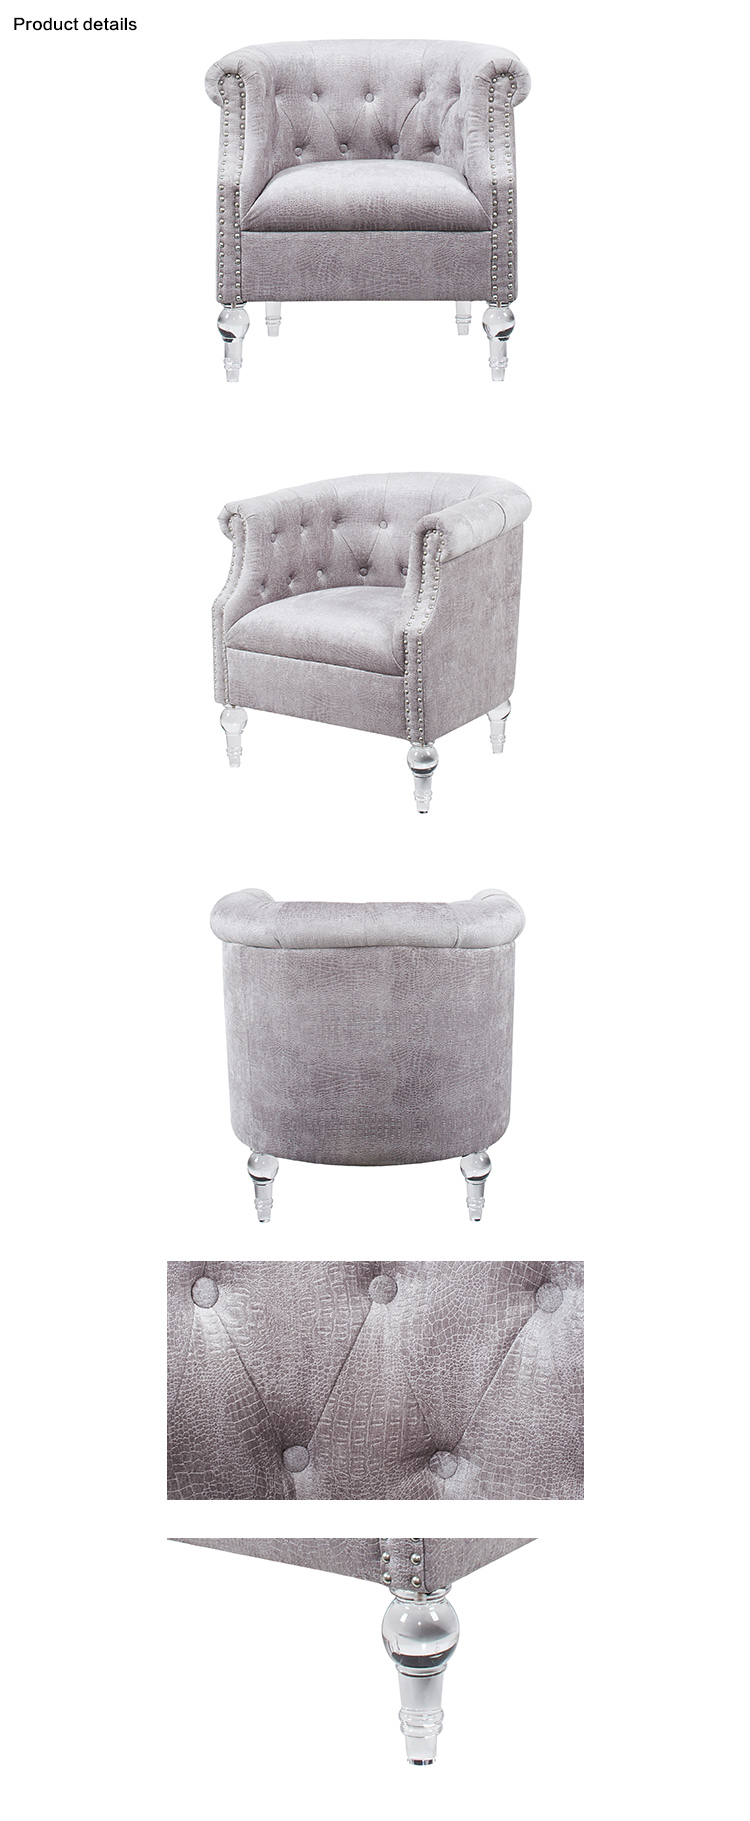 French Living Room Accent Tufted Arm Chairs With Acrylic Legs Rivet ...